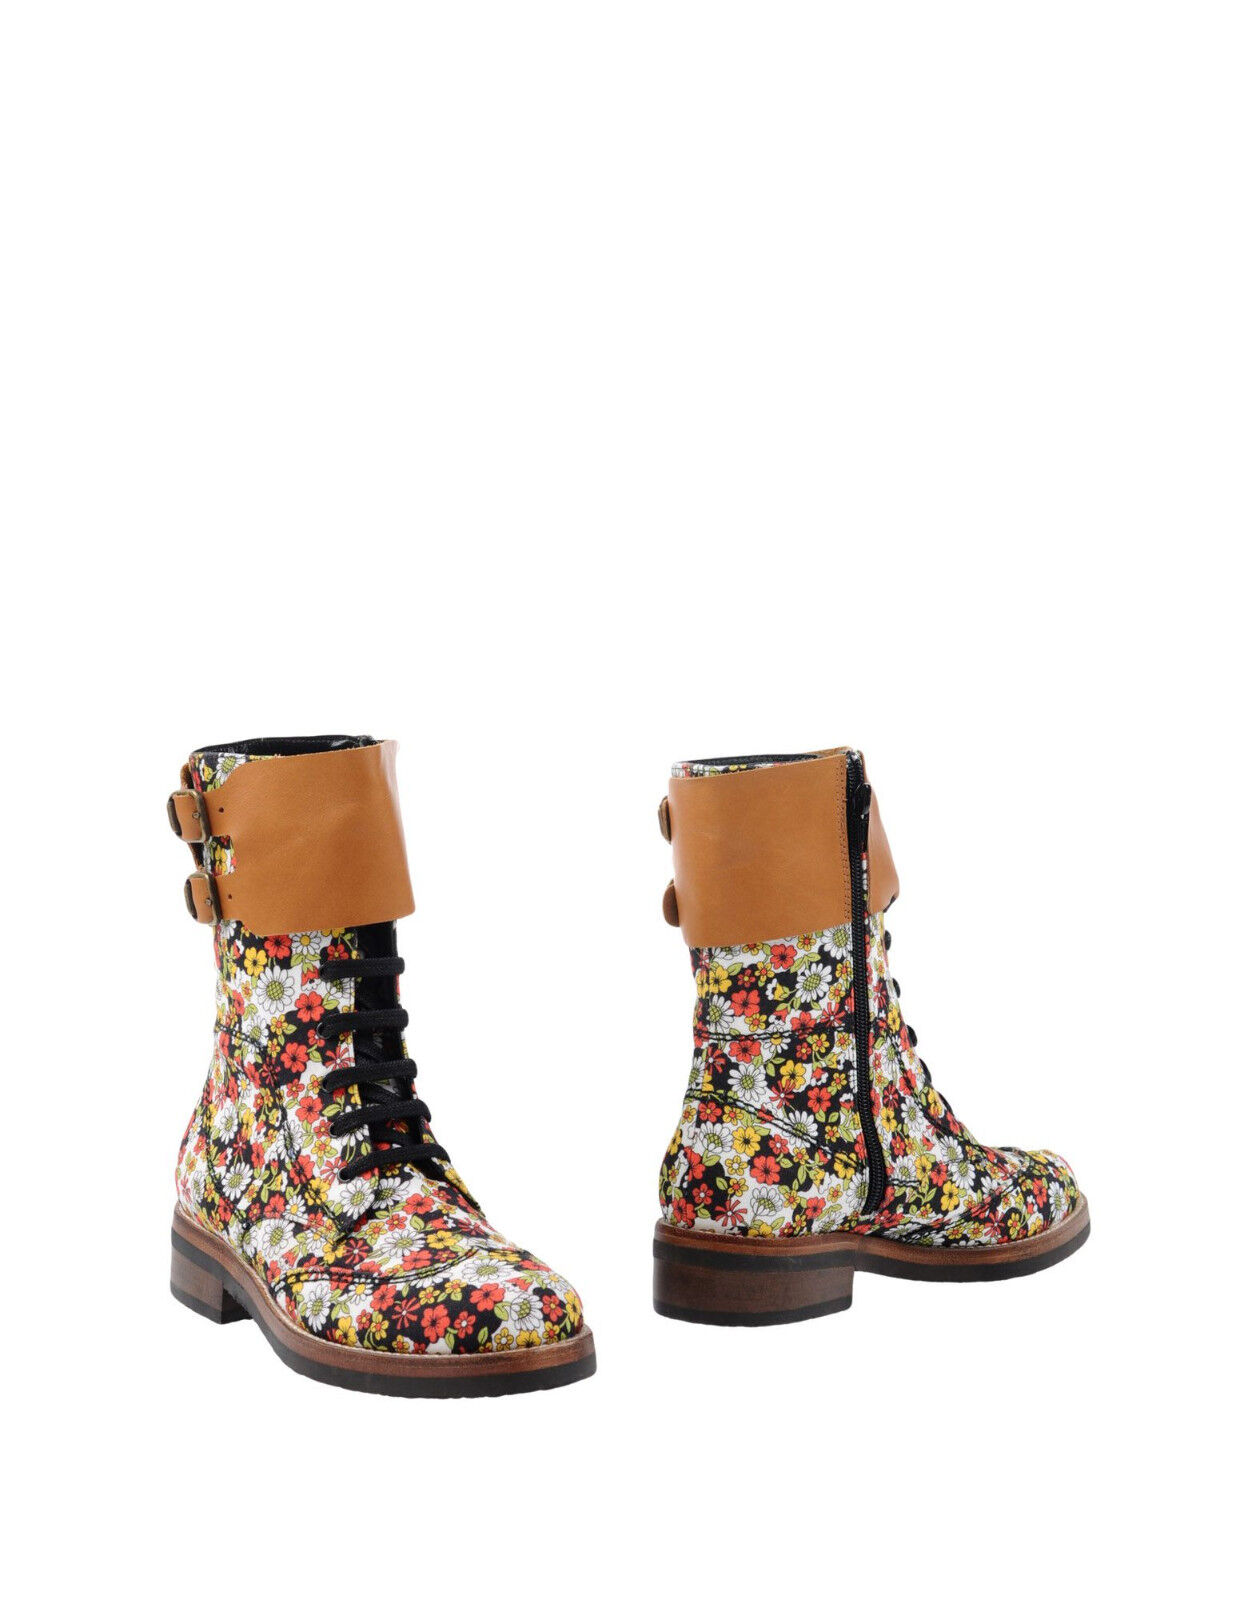 NEW MANOUSH FLORAL CANVAS & LEATHER WOMENS LUXURY ANKLE BOOTS EU 37 UK 3.5 4